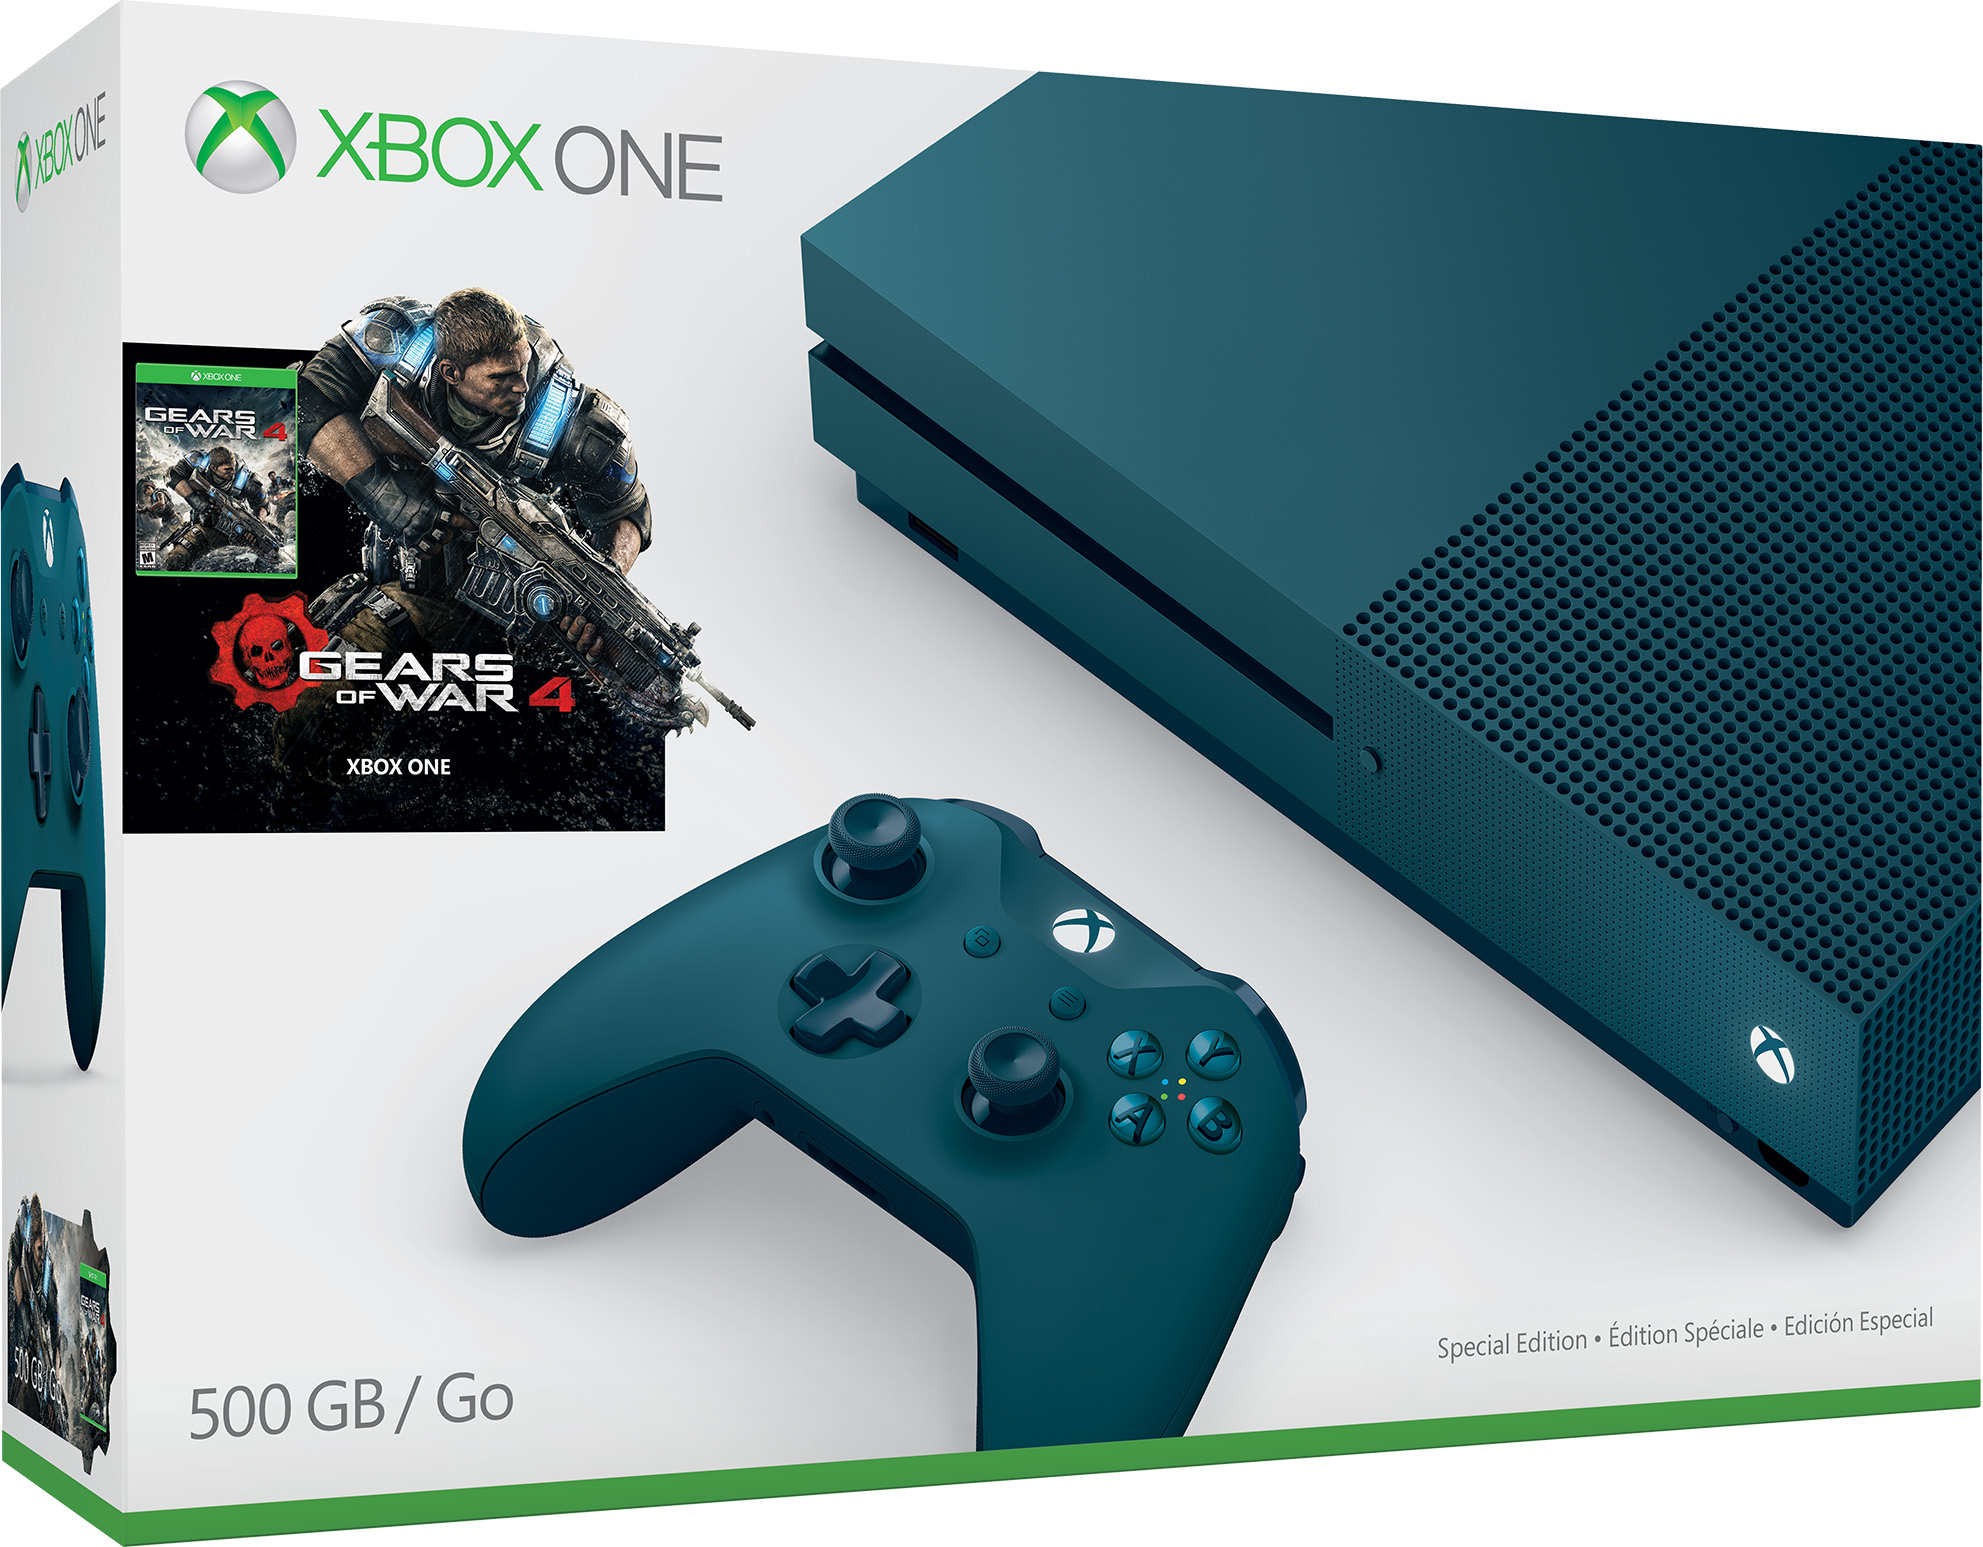 Xbox One S Gears of War 4 Special Edition Bundle (500GB)